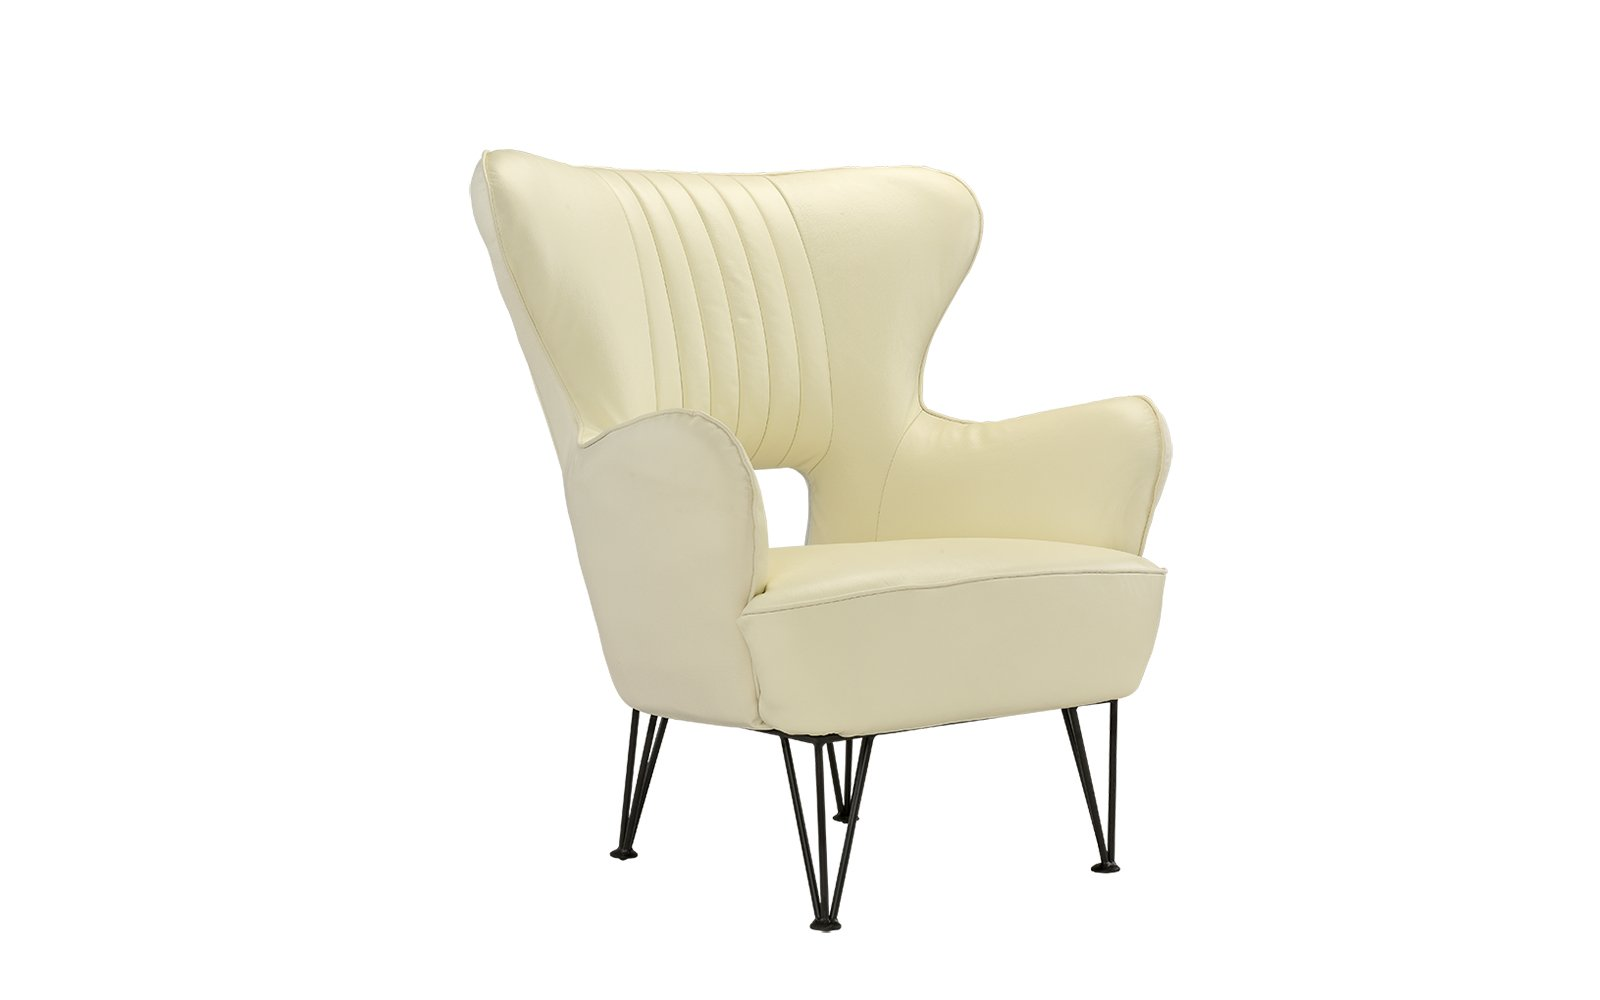 Modern Leather Accent Armchair with Shelter Style Living Room Chair (Beige) - Armchair with a futuristic yet mid-century modern feel with shelter frame and other modern accents. Features real leather match upholstery with a pleated detail on back rest and pin-legs. Hardwood frame with upholstery in various colors to best fit your decor and style. Tight seat filled with high density foam with comfort foam around frame and back as well. - living-room-furniture, living-room, accent-chairs - 51qhTmF4jHL -